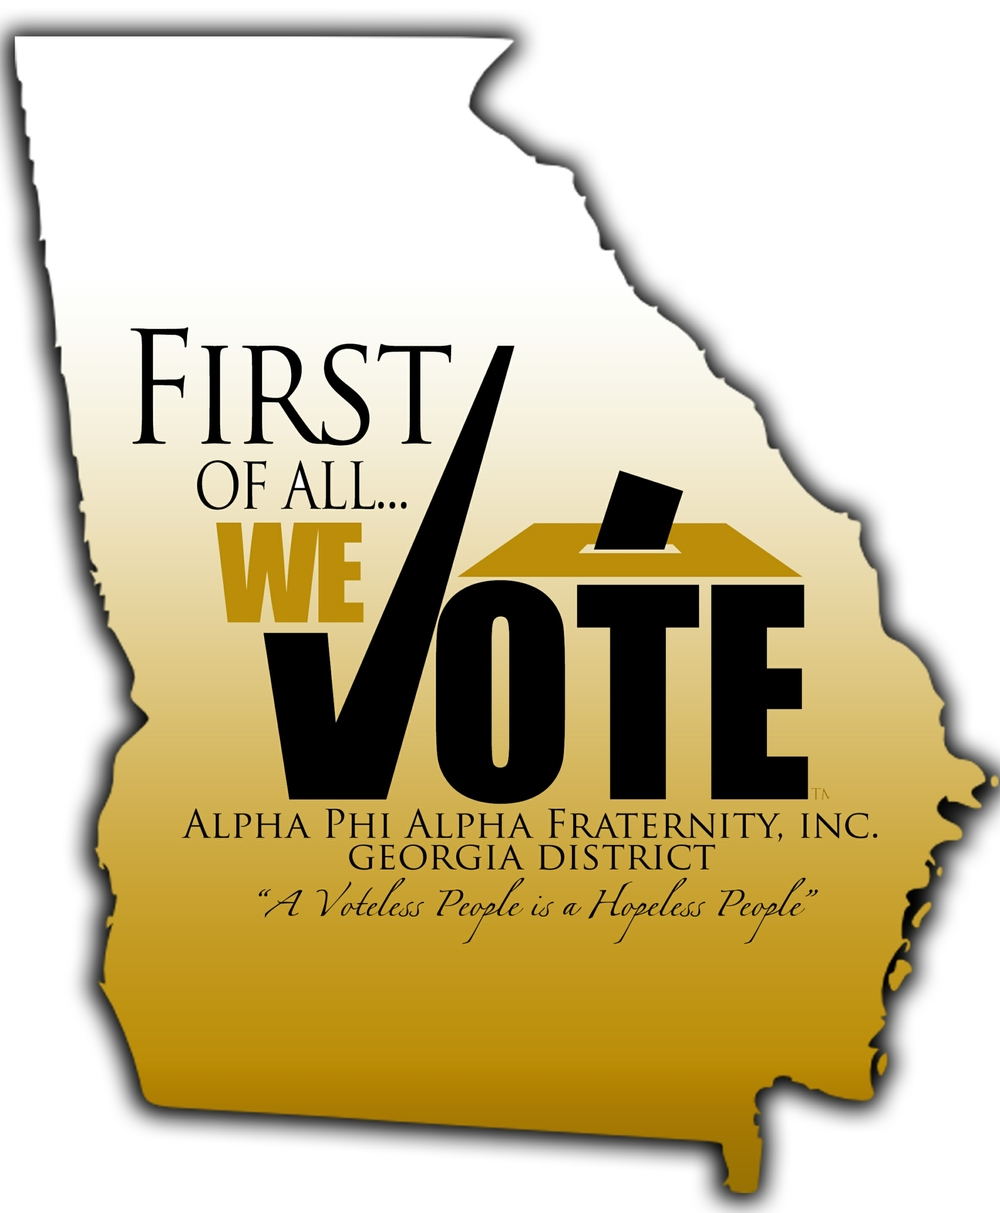 Georgia District First of All We Vote.jpg